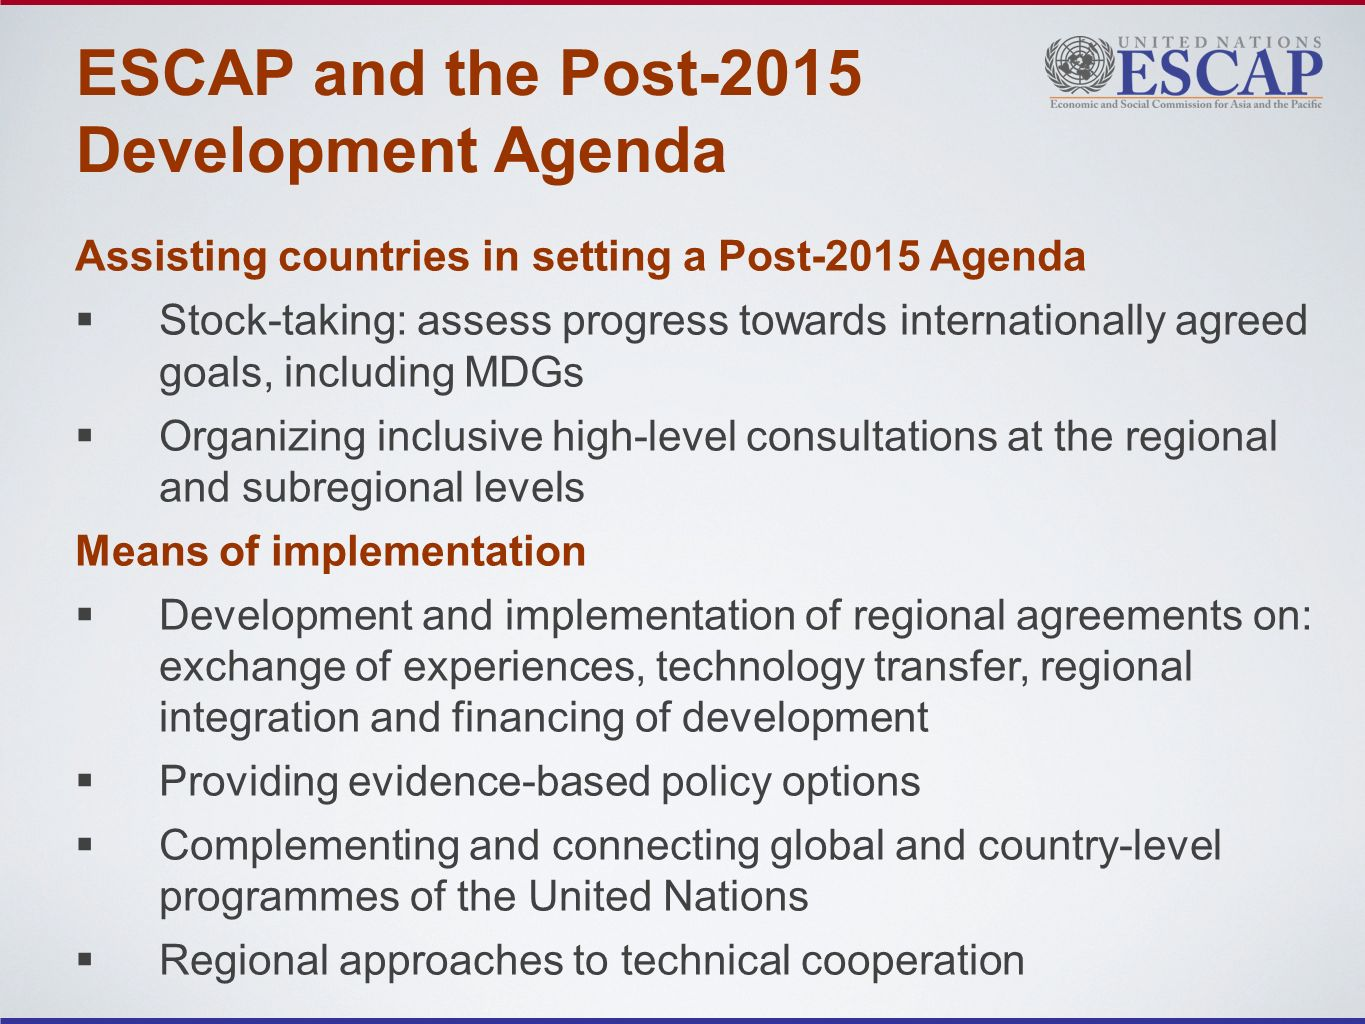 ESCAP and the Post-2015 Development Agenda Assisting countries in setting a Post-2015 Agenda Stock-taking: assess progress towards internationally agreed goals, including MDGs Organizing inclusive high-level consultations at the regional and subregional levels Means of implementation Development and implementation of regional agreements on: exchange of experiences, technology transfer, regional integration and financing of development Providing evidence-based policy options Complementing and connecting global and country-level programmes of the United Nations Regional approaches to technical cooperation